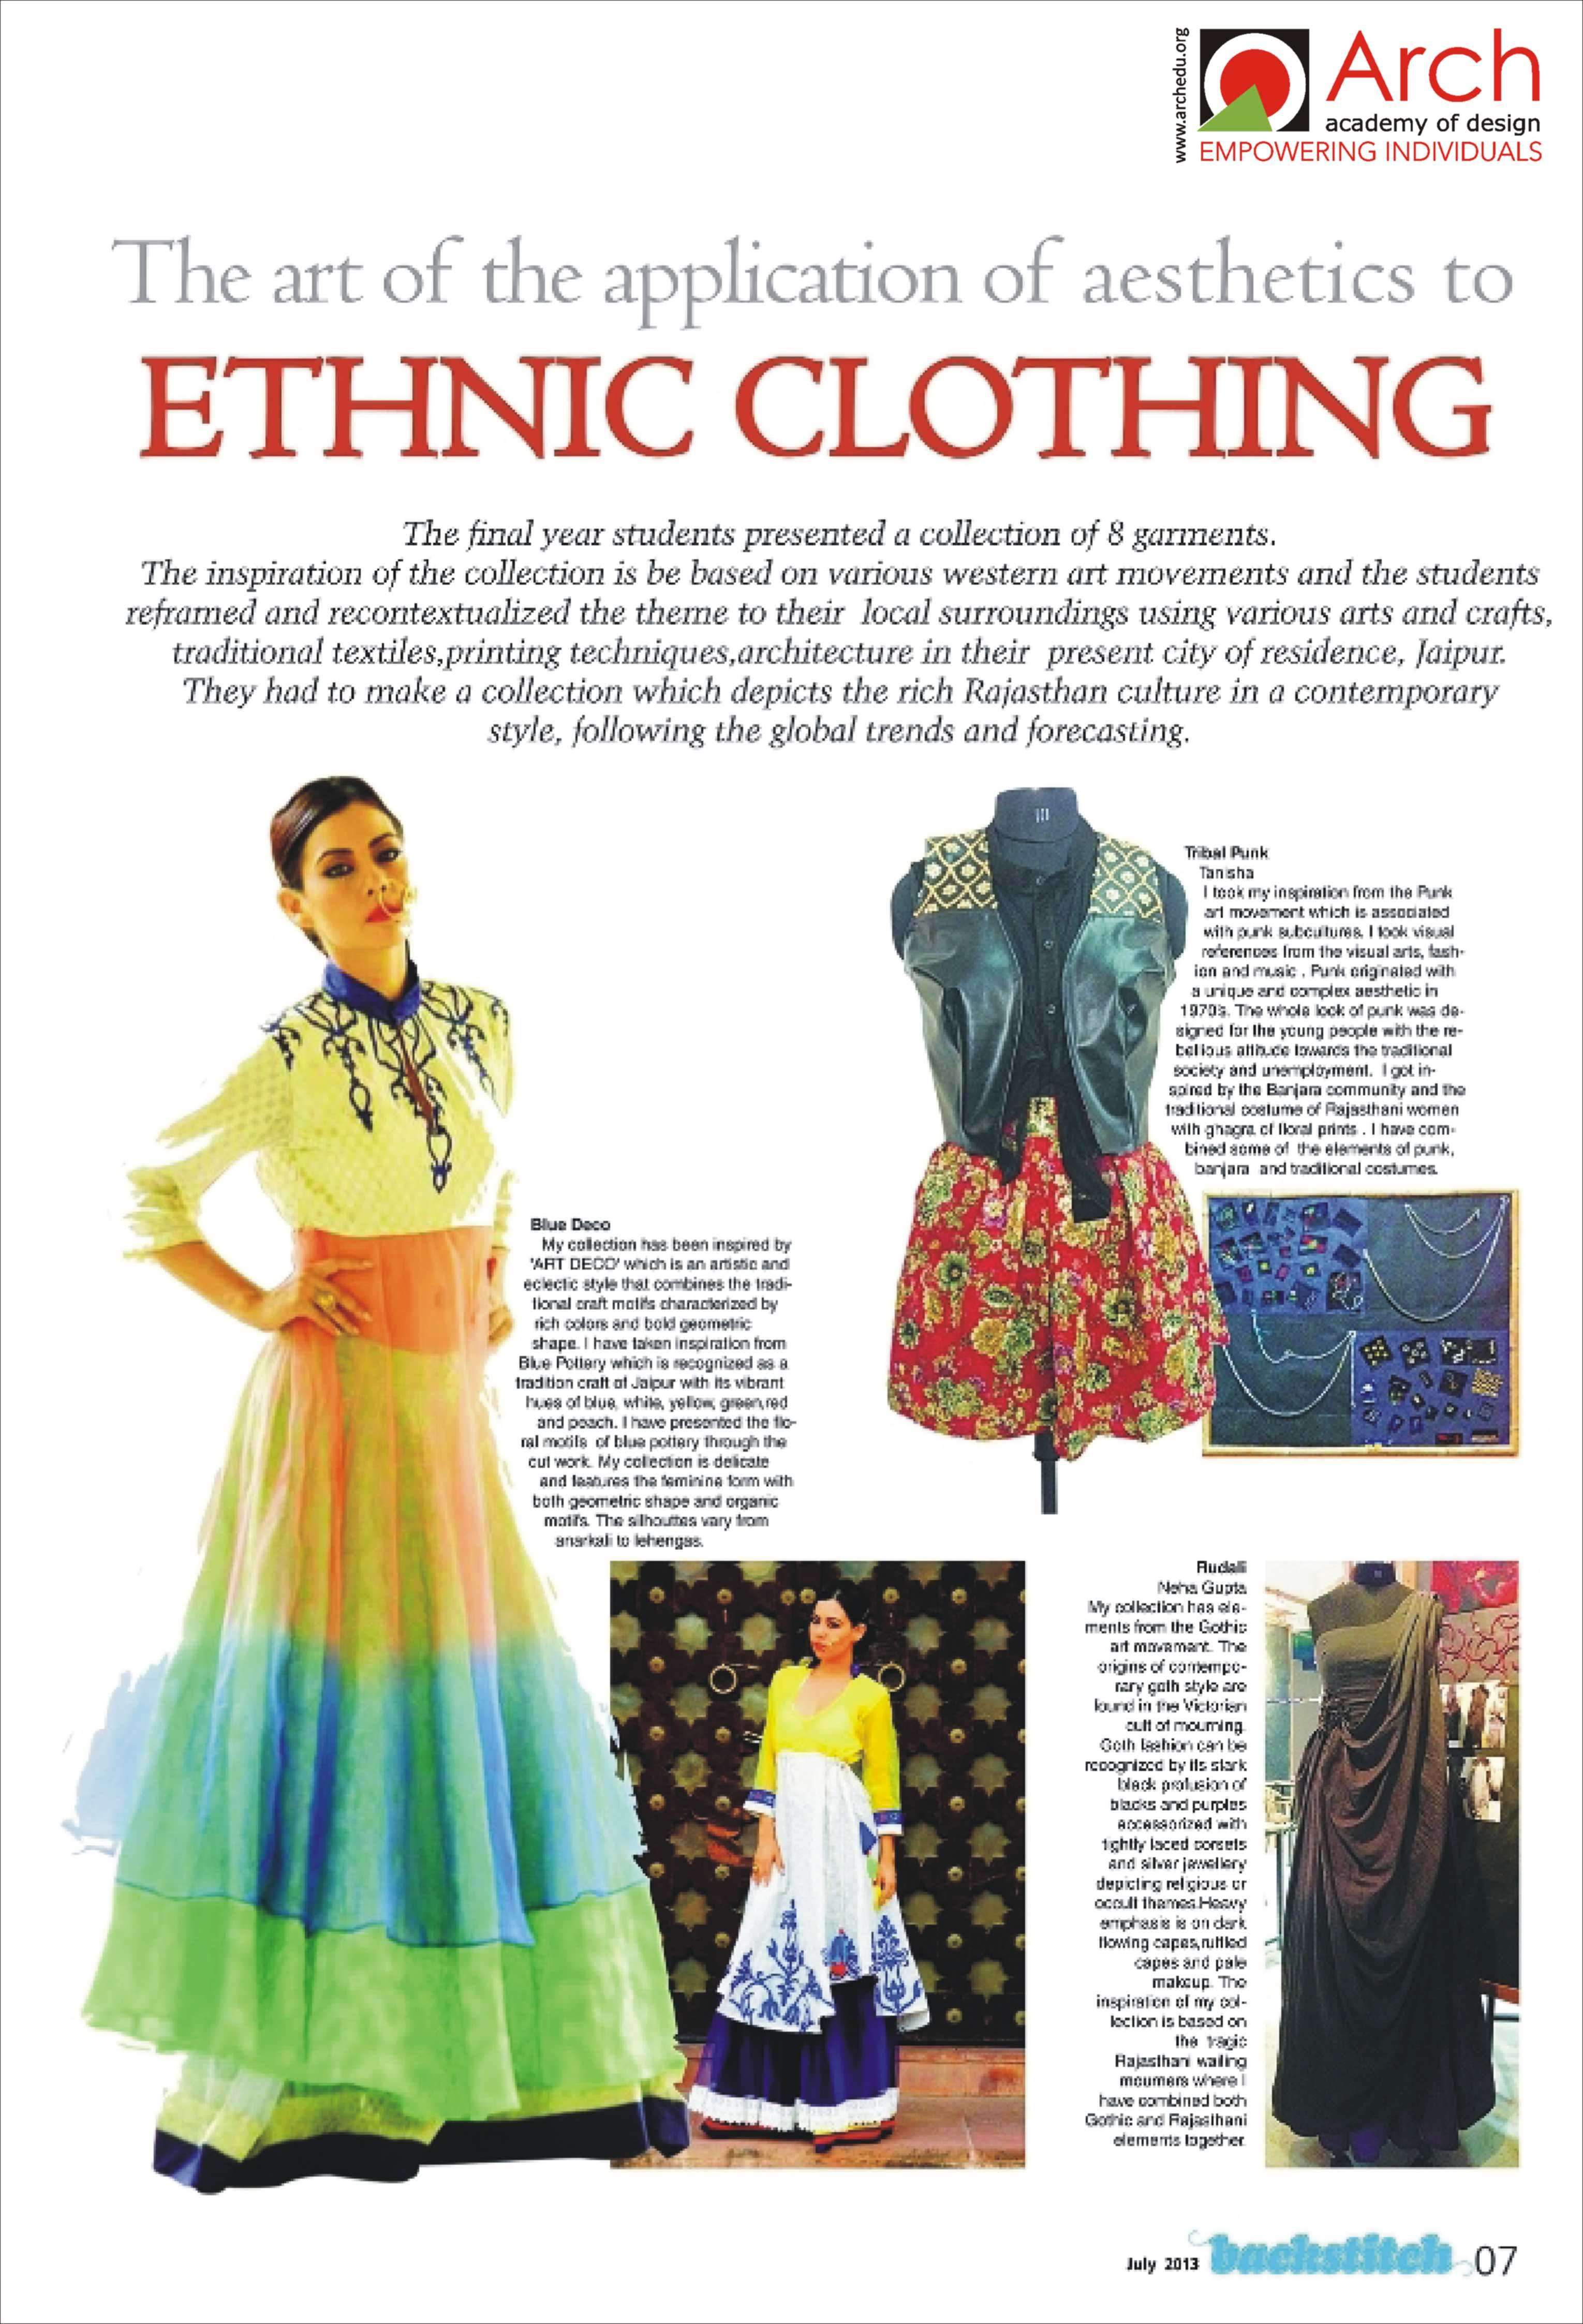 Pin By Arch College Of Design Busin On Arch Academy Of Design Clothes Fashion How To Wear